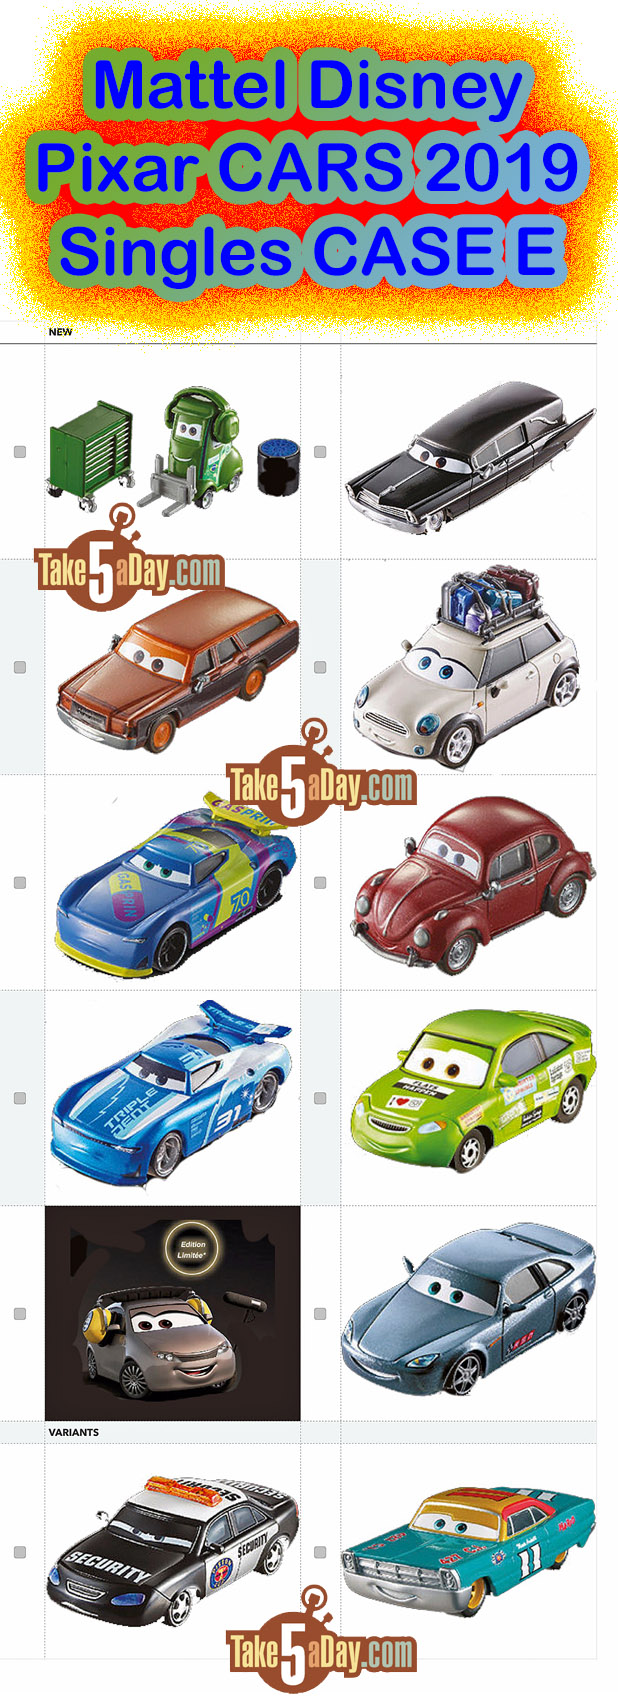 Take Five A Day Blog Archive Mattel Disney Pixar Cars The Super